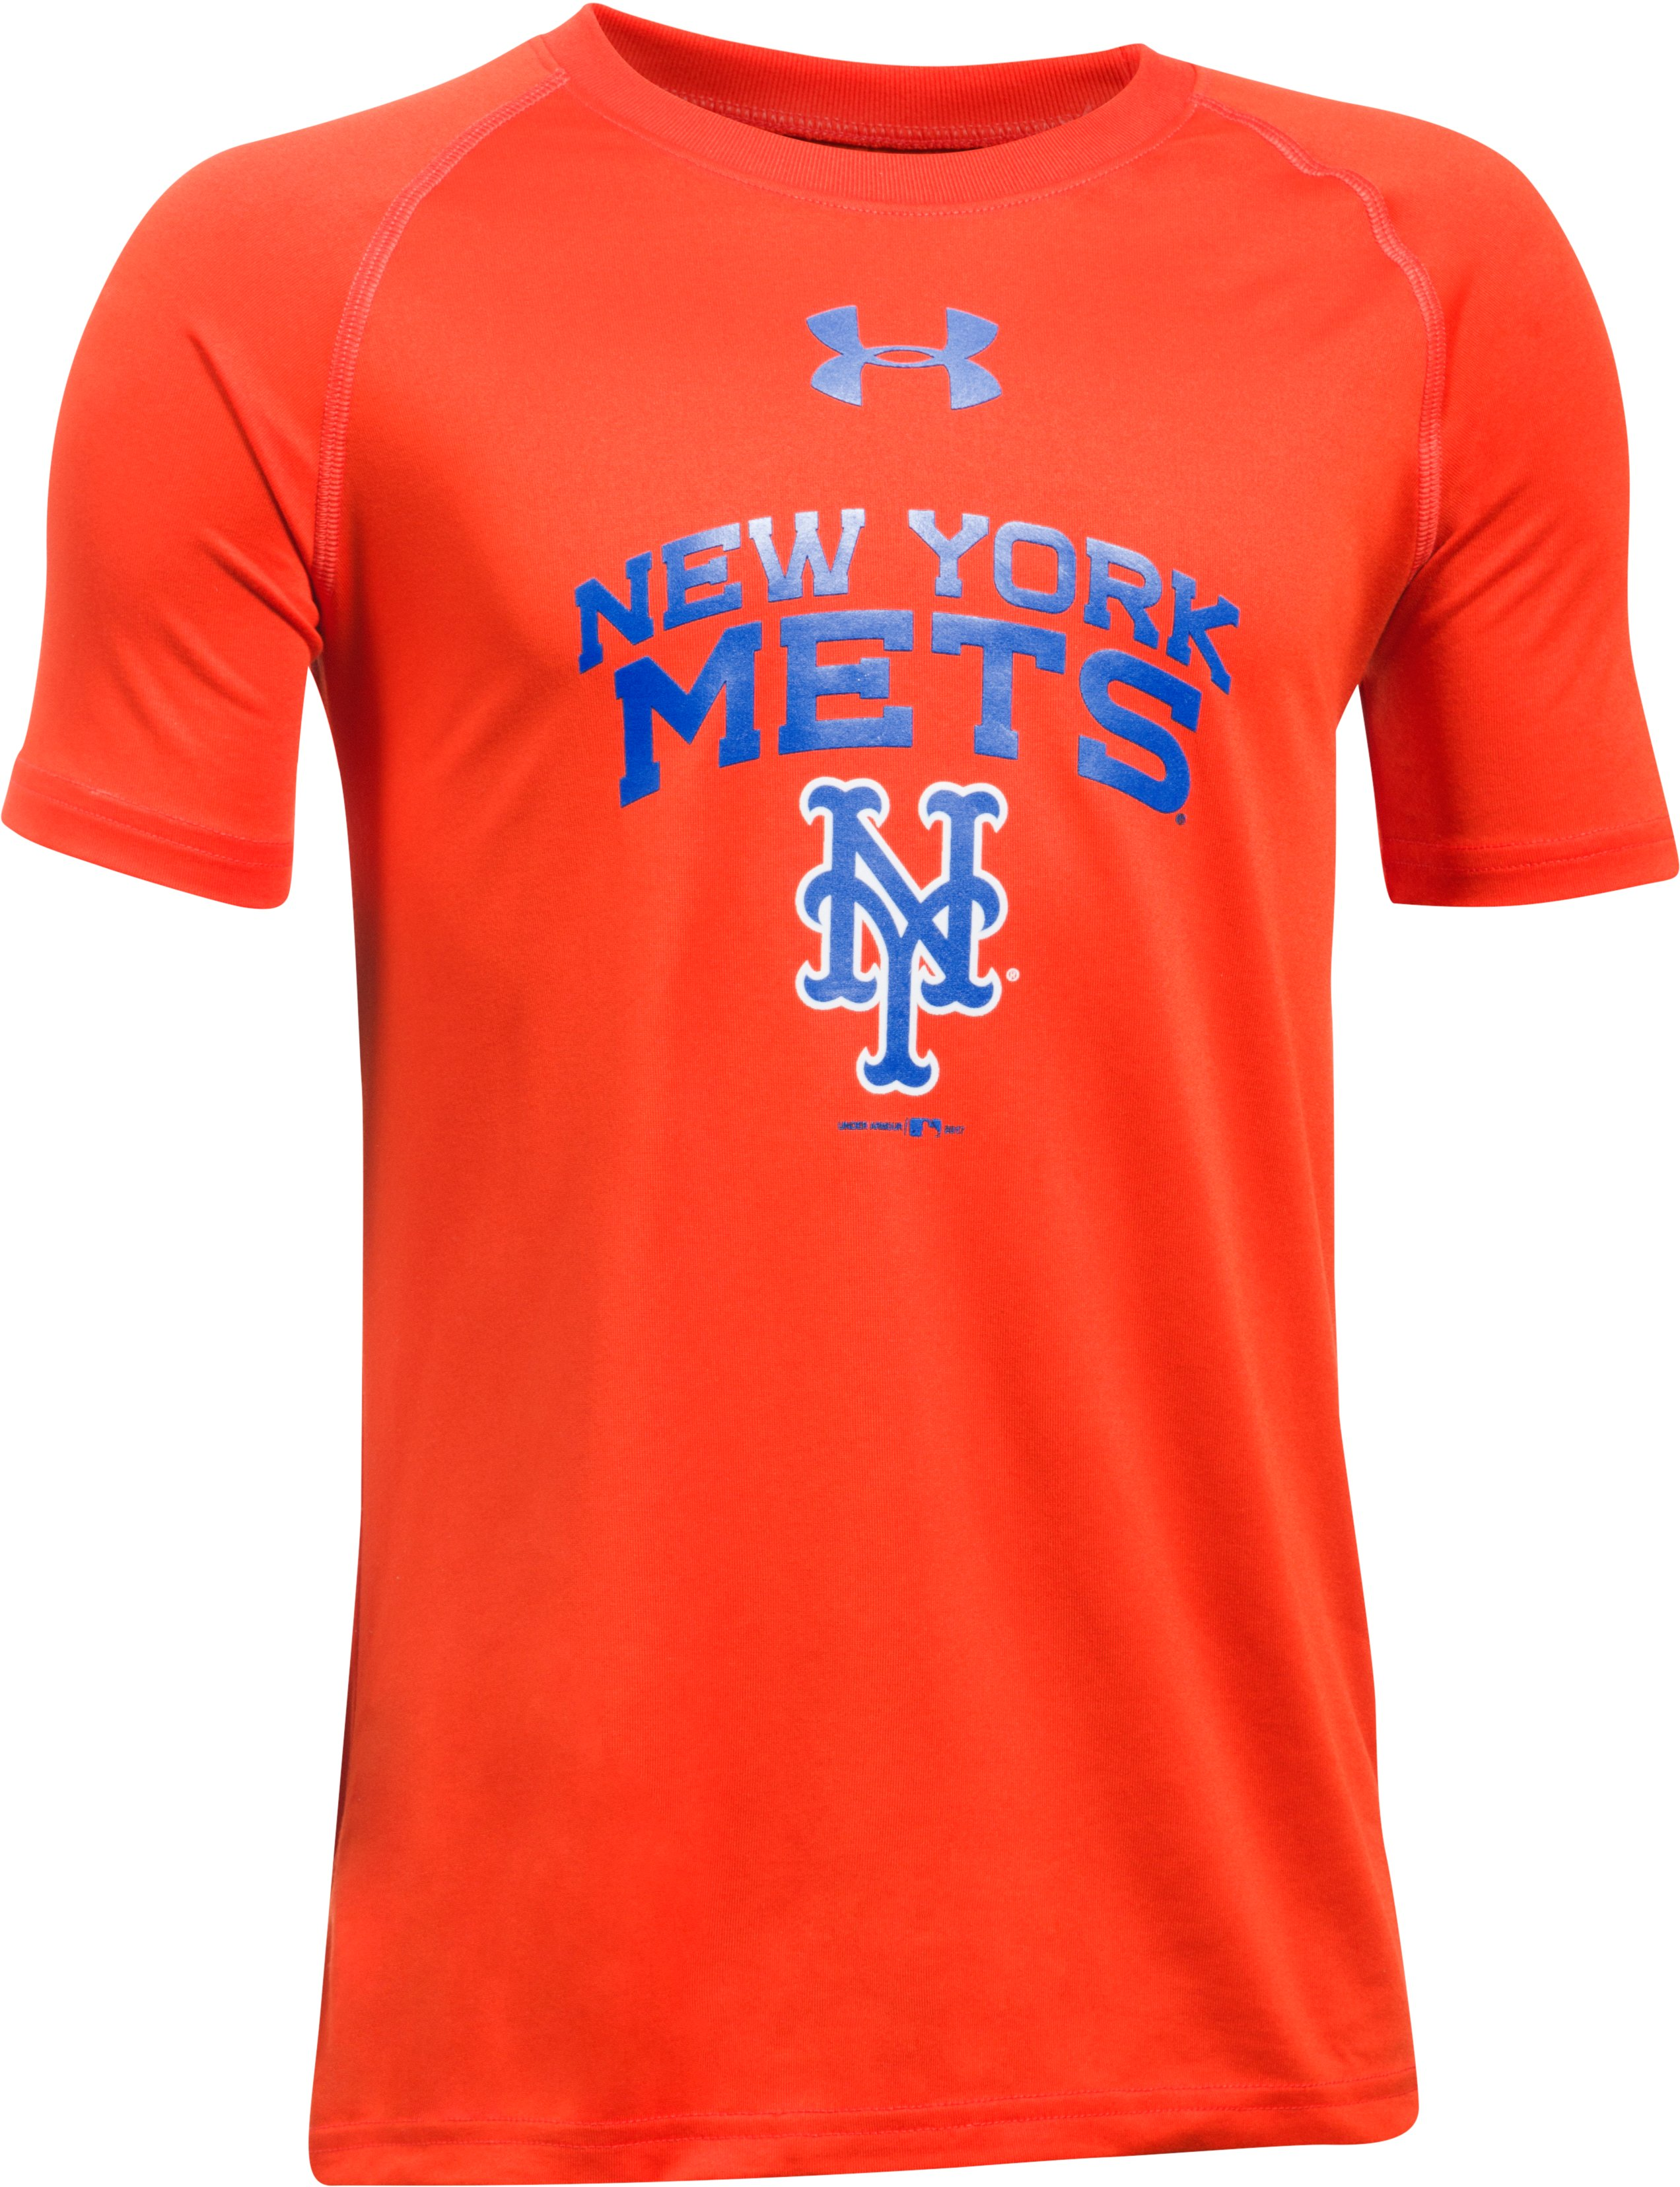 Boys' New York Mets UA Tech™ T-Shirt, Dark Orange